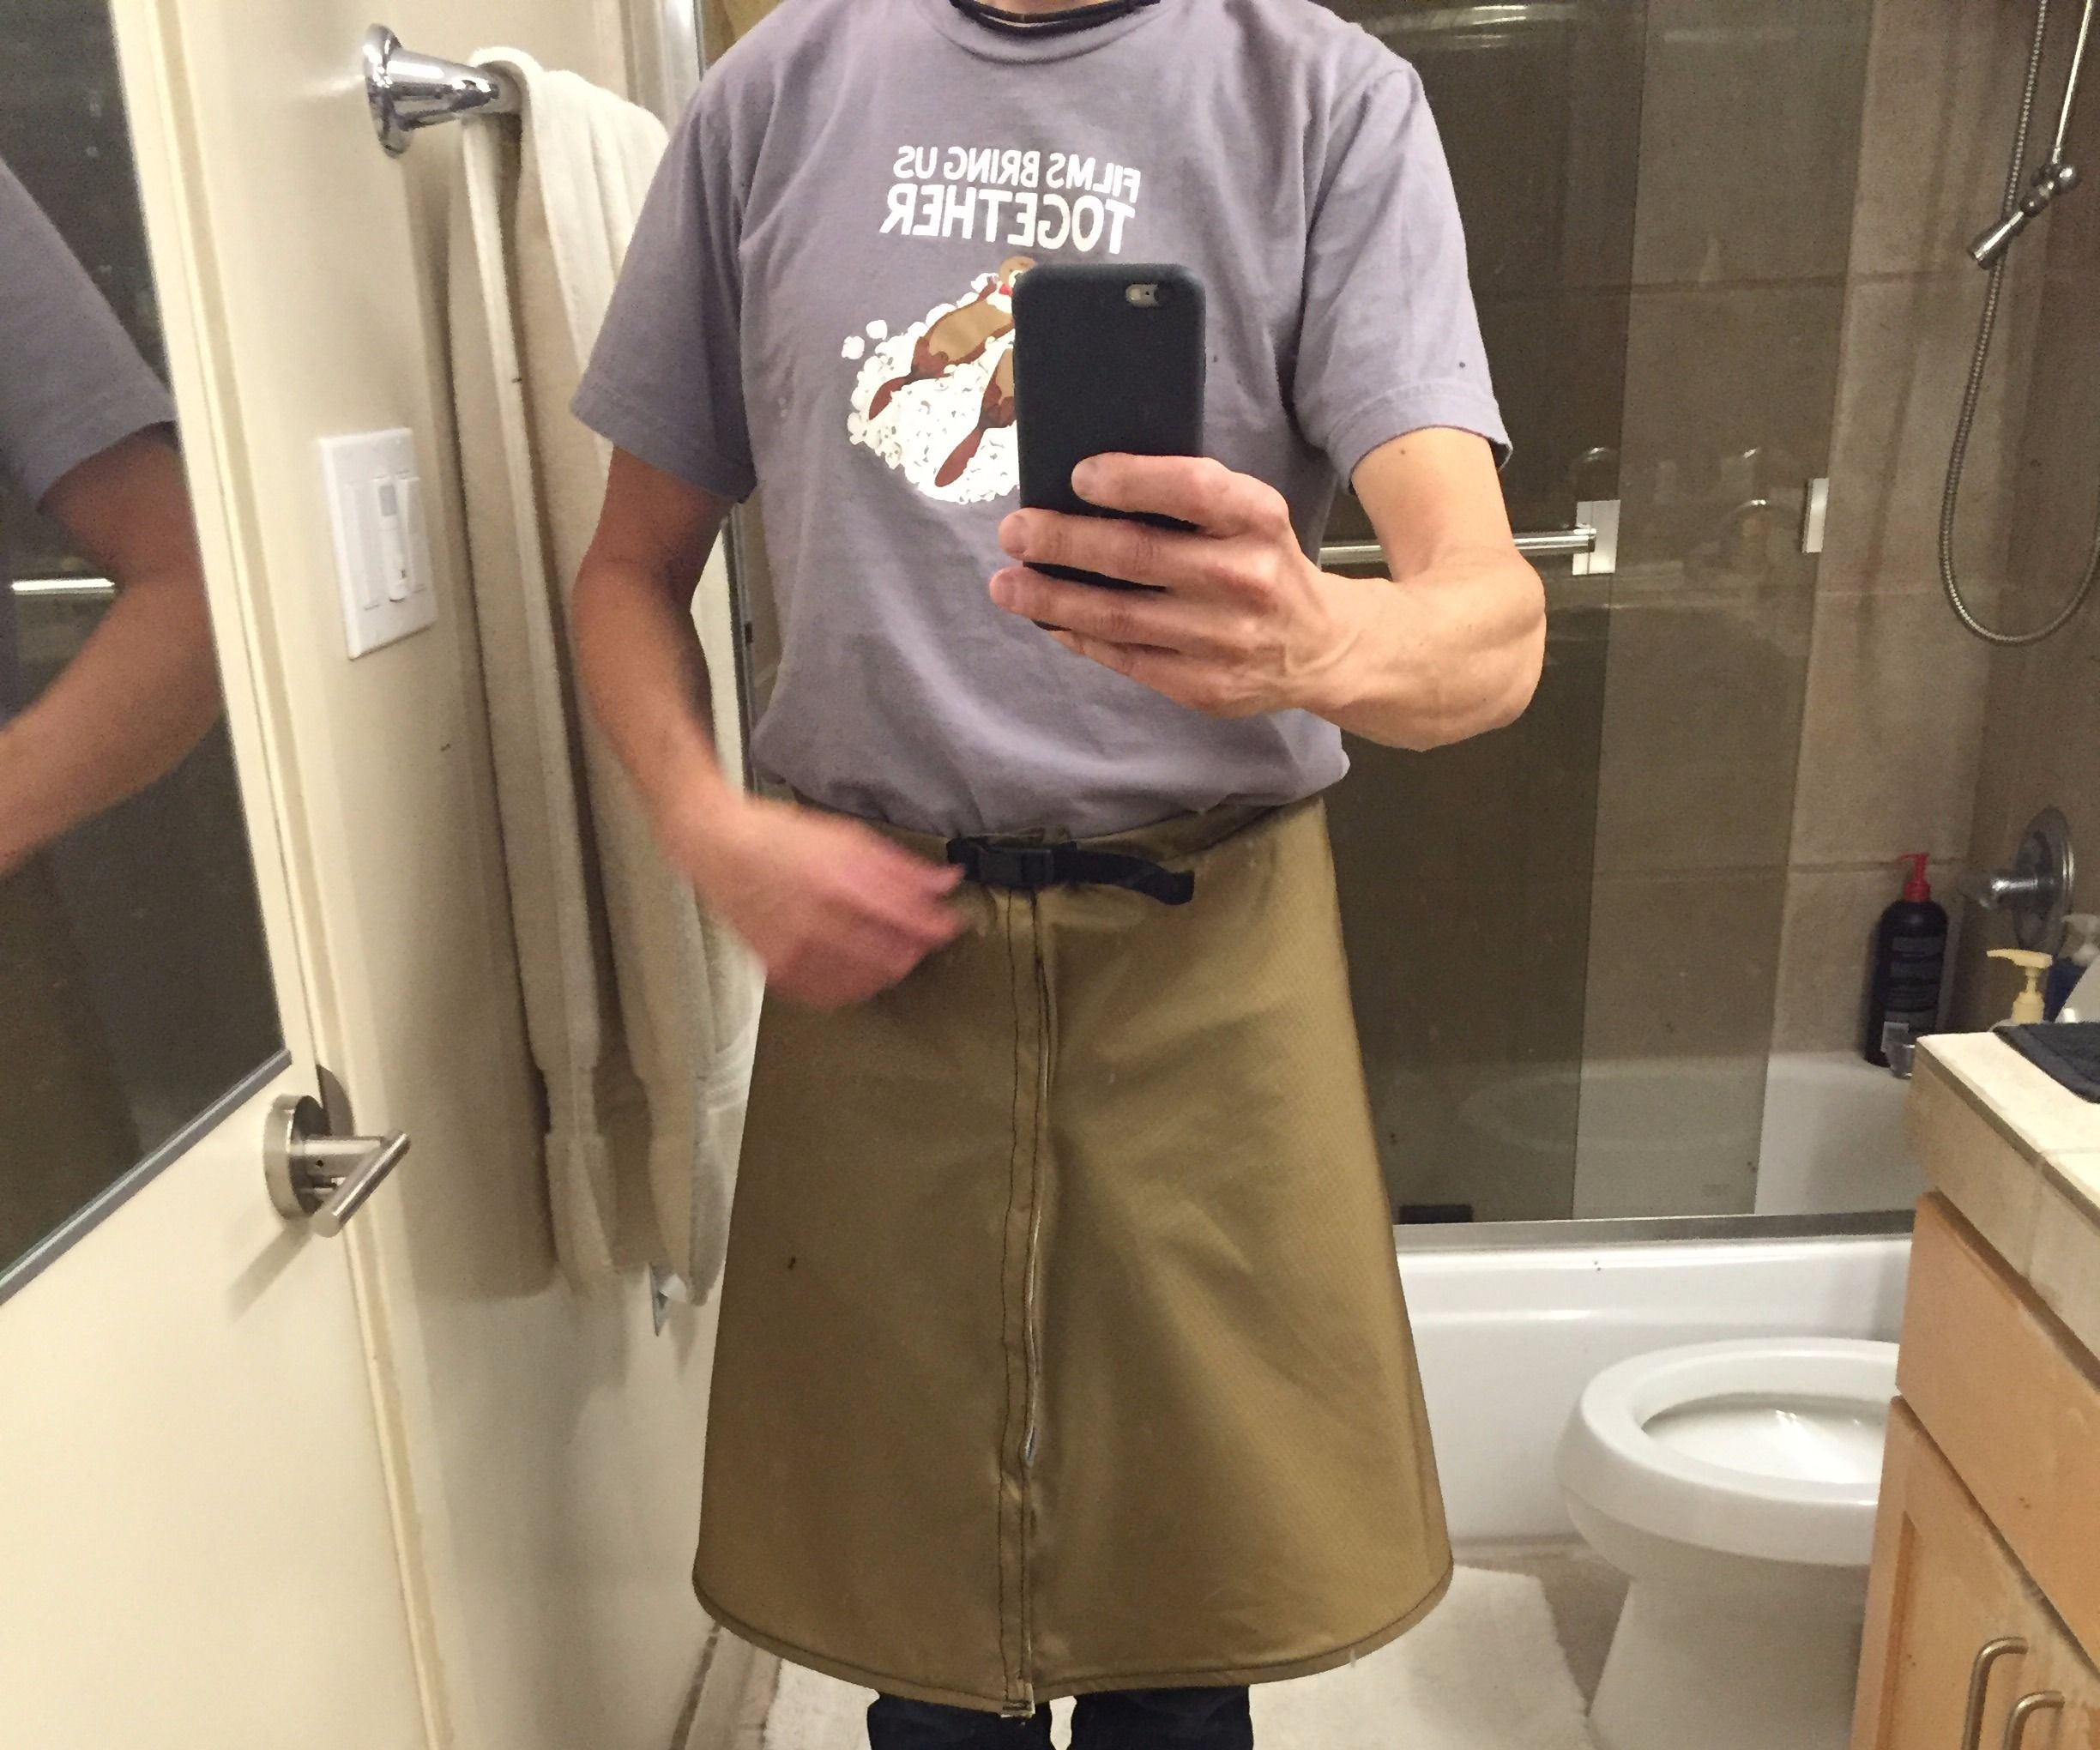 Rain Kilt (Skirt) for hiking